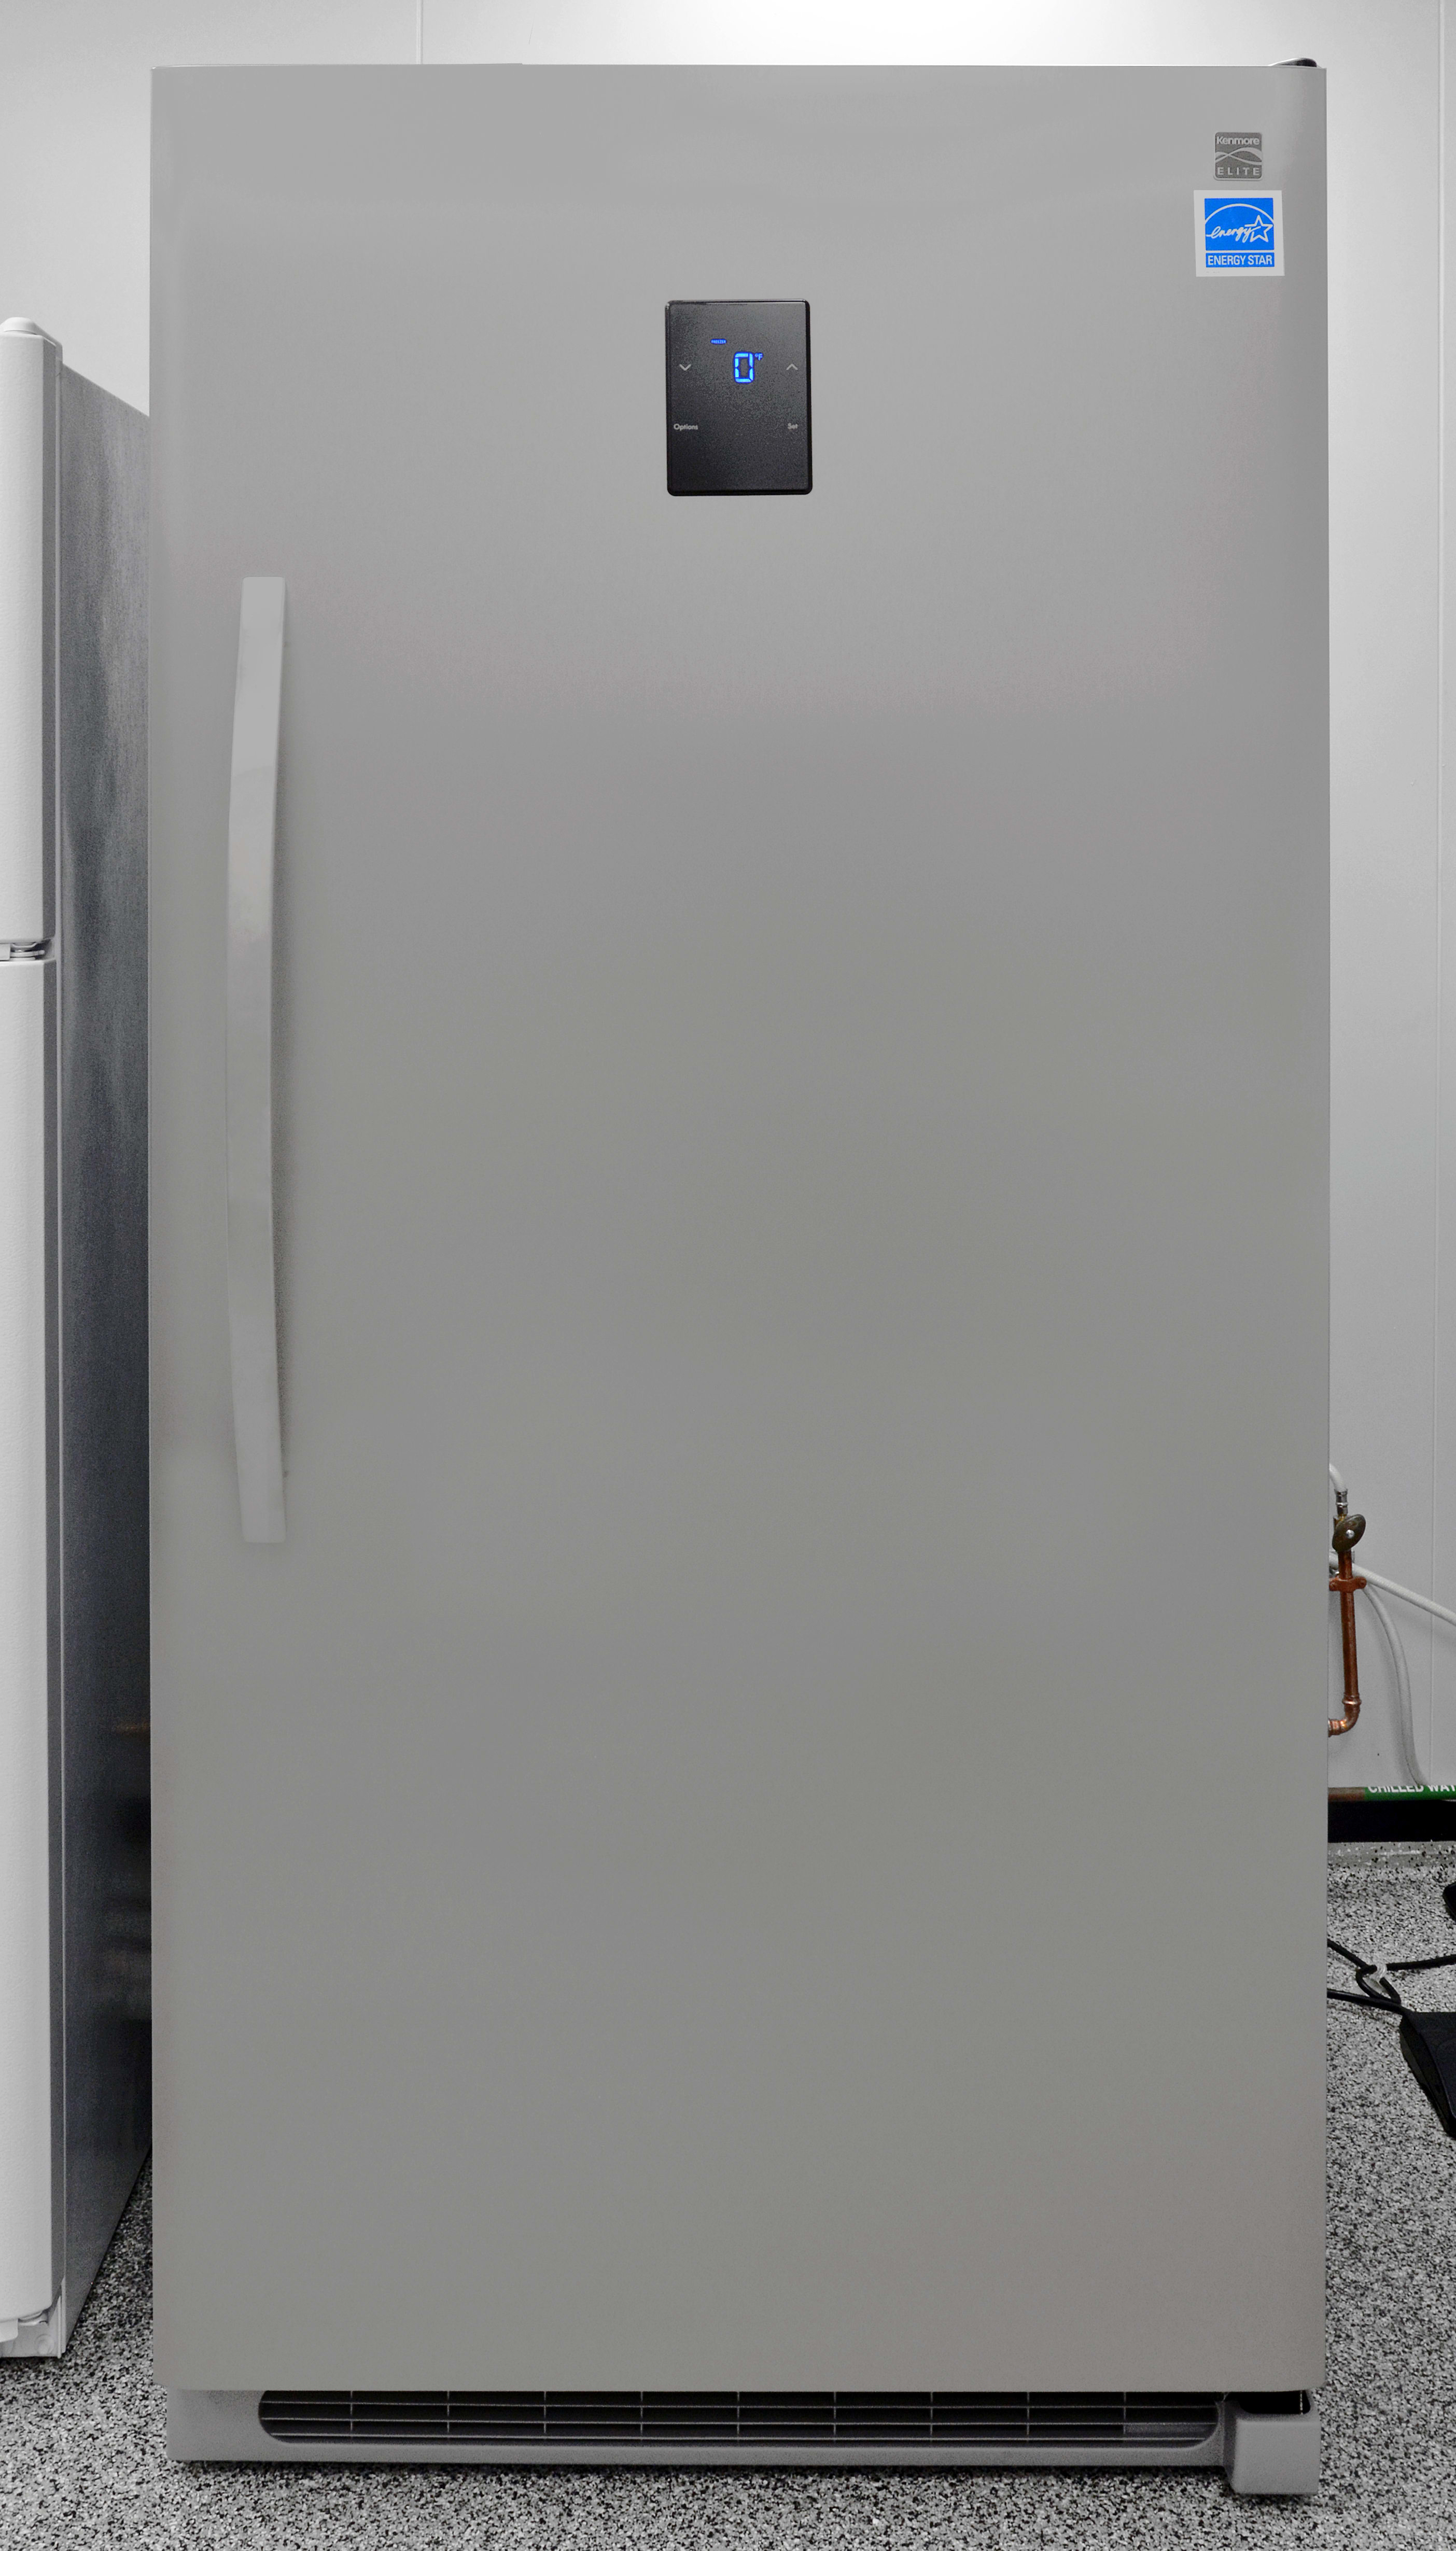 The outside of the Kenmore Elite 27003 is an expanse of stainless steel.